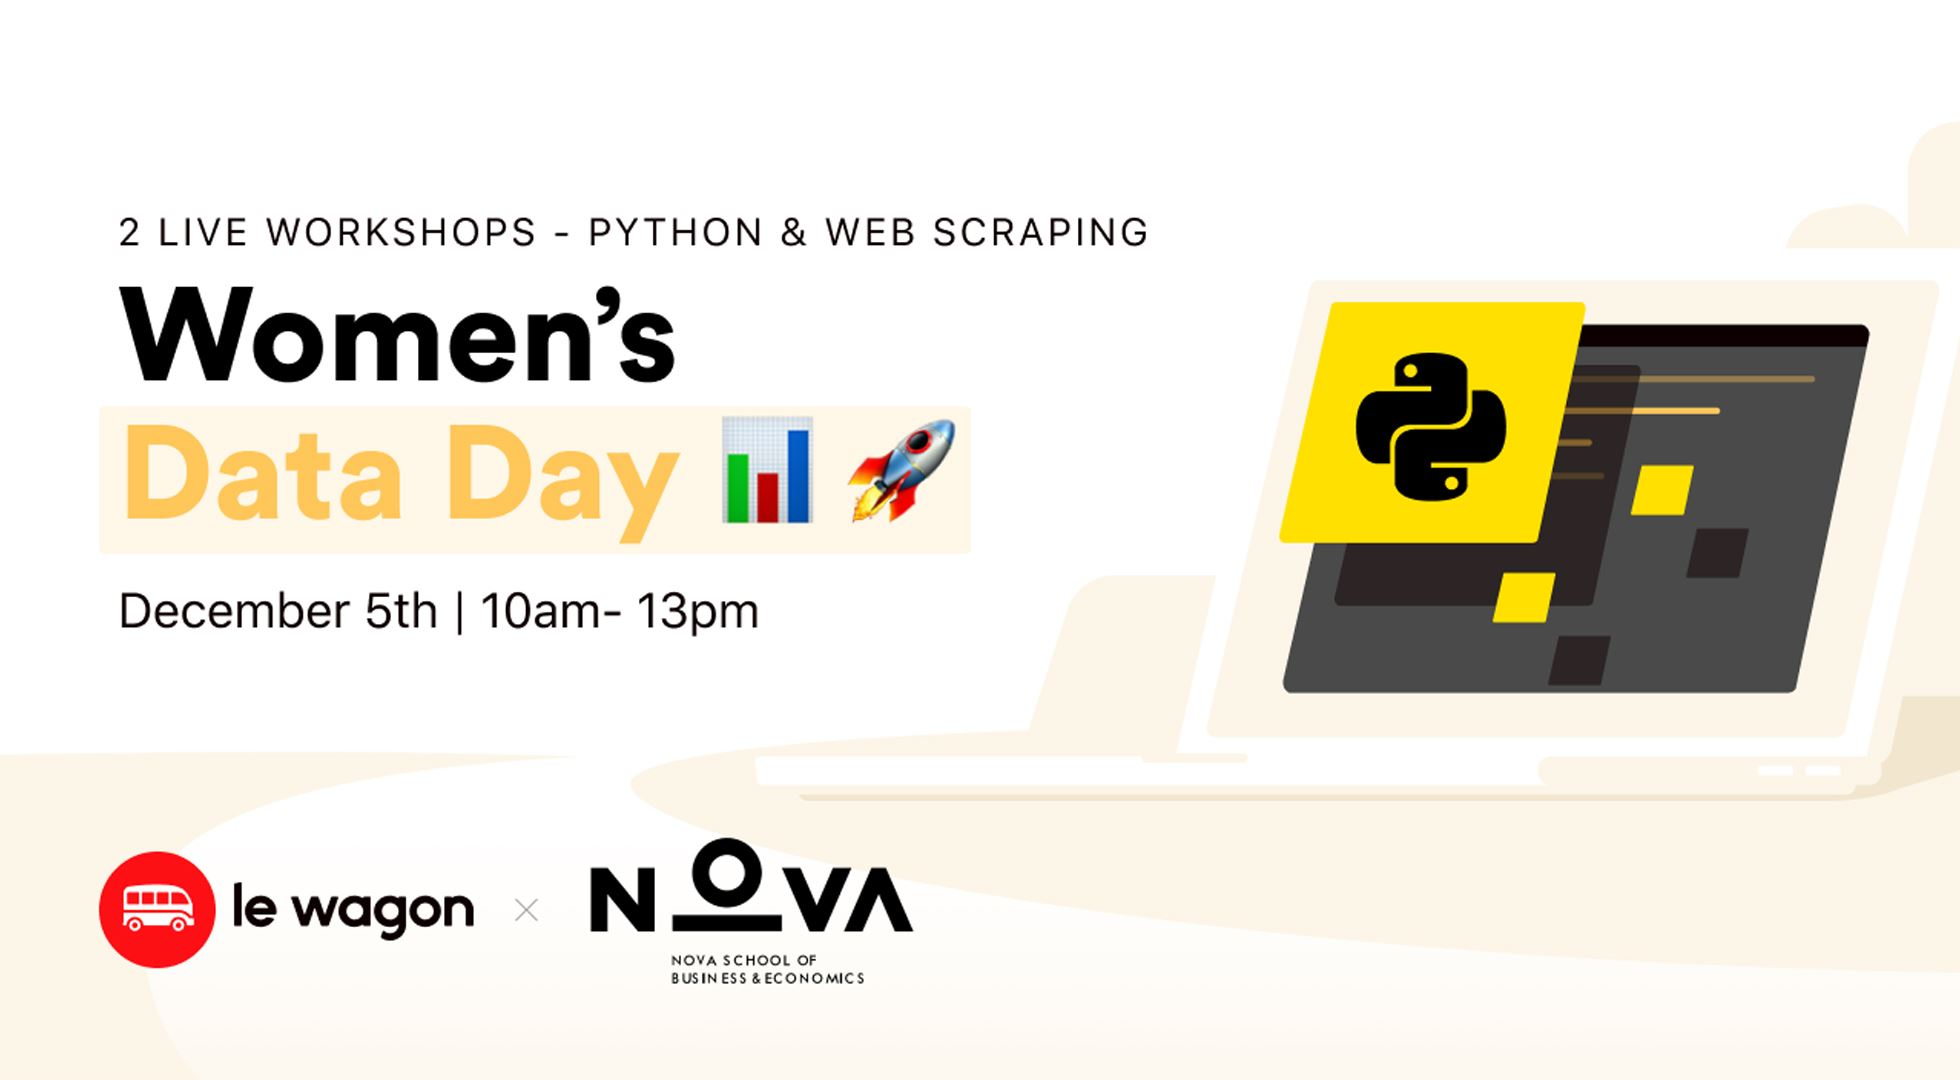 Women's Data Day - Data Analytics & Web Scraping